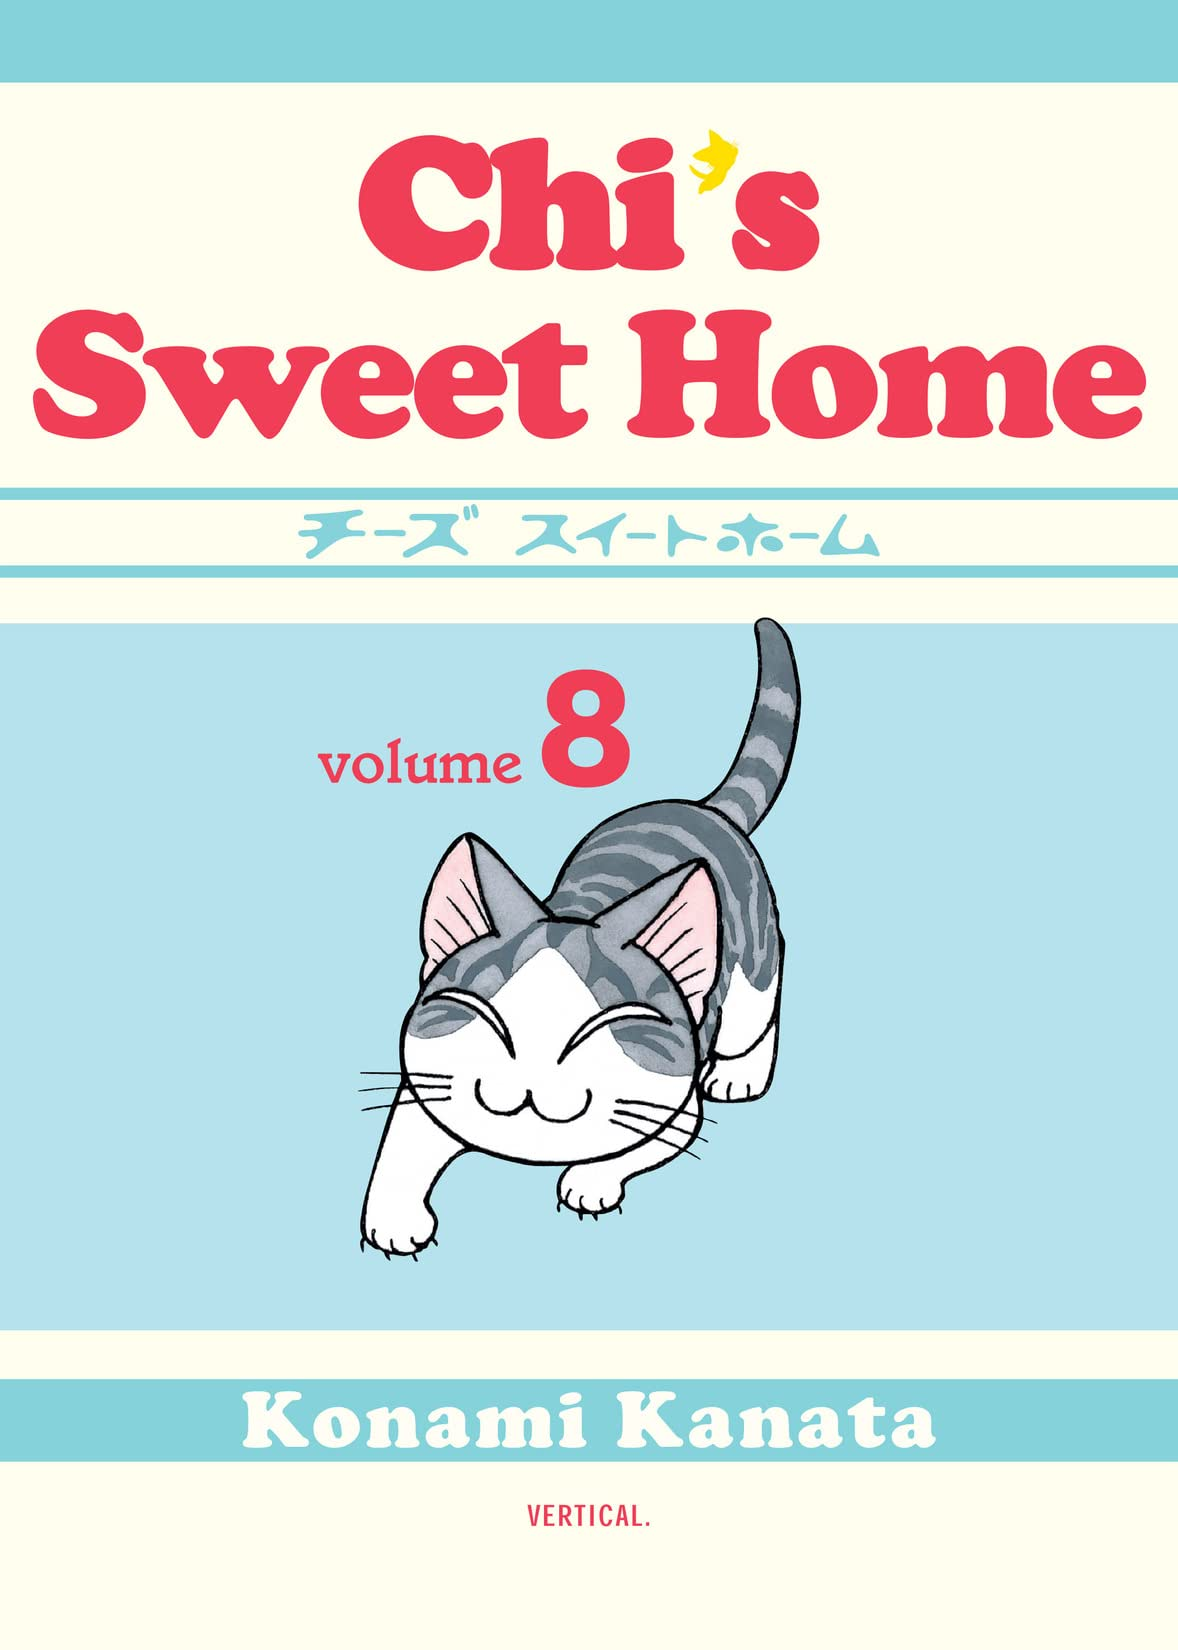 Chi's Sweet Home Vol. 8